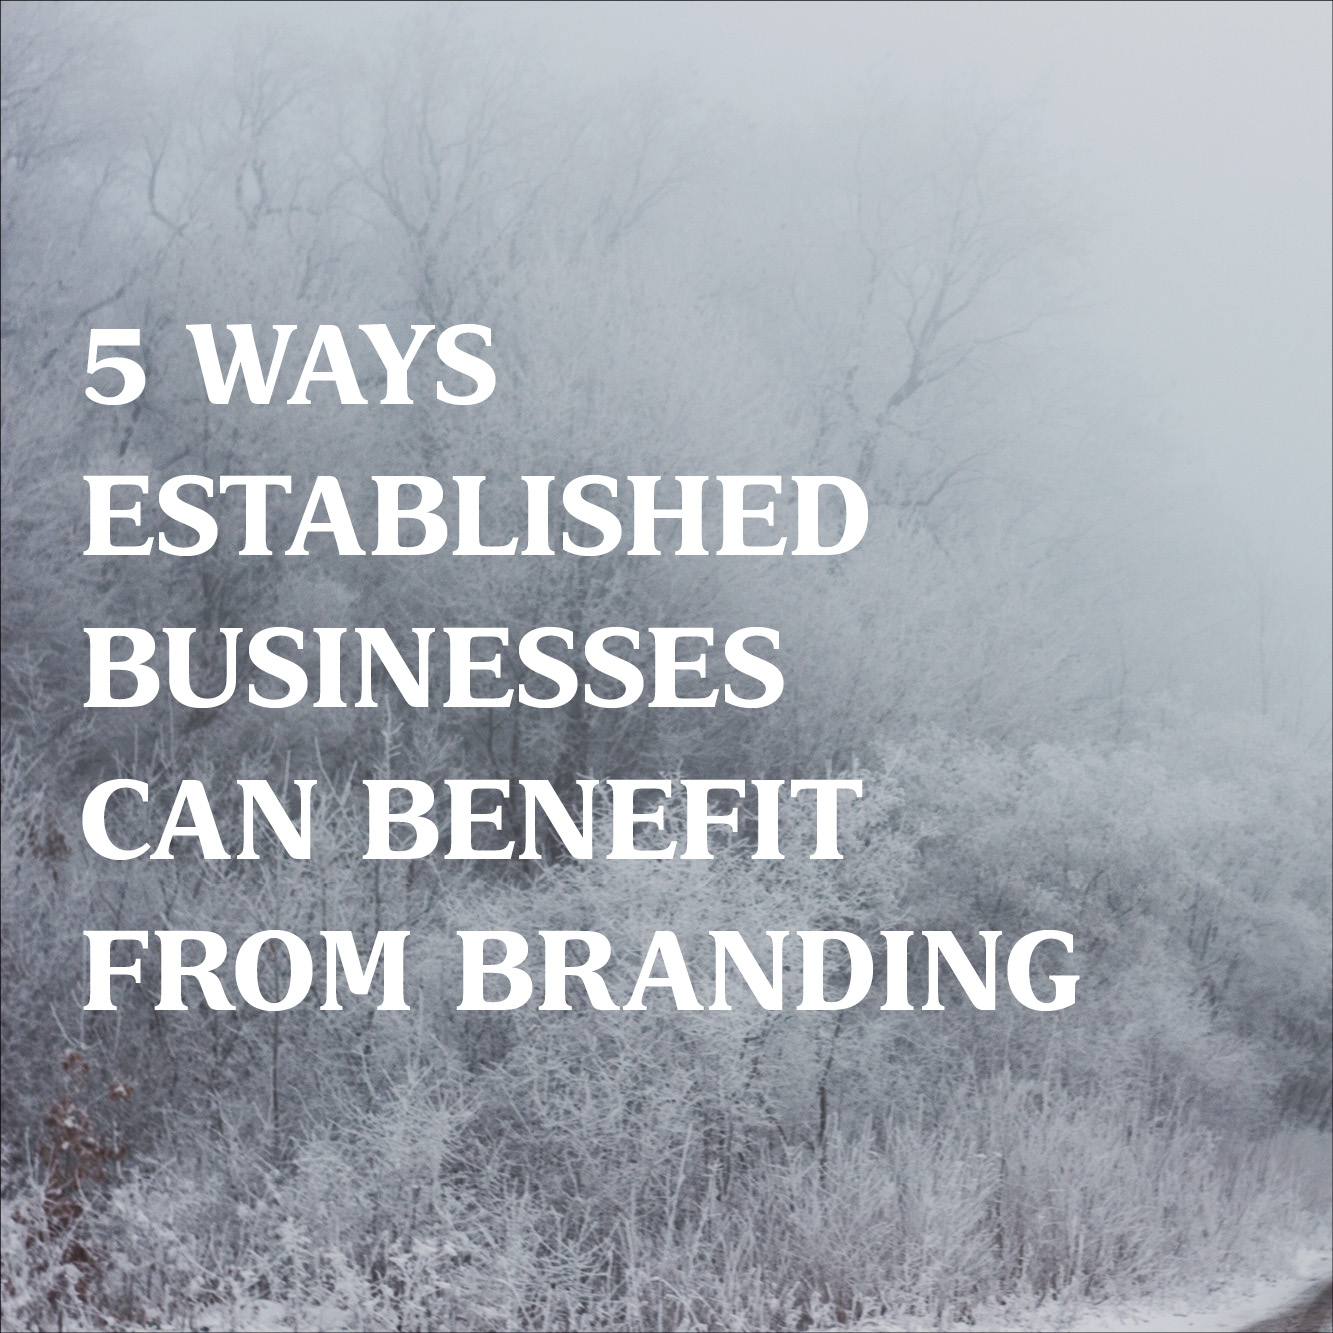 5 Ways Established Businesses Can Benefit from Branding